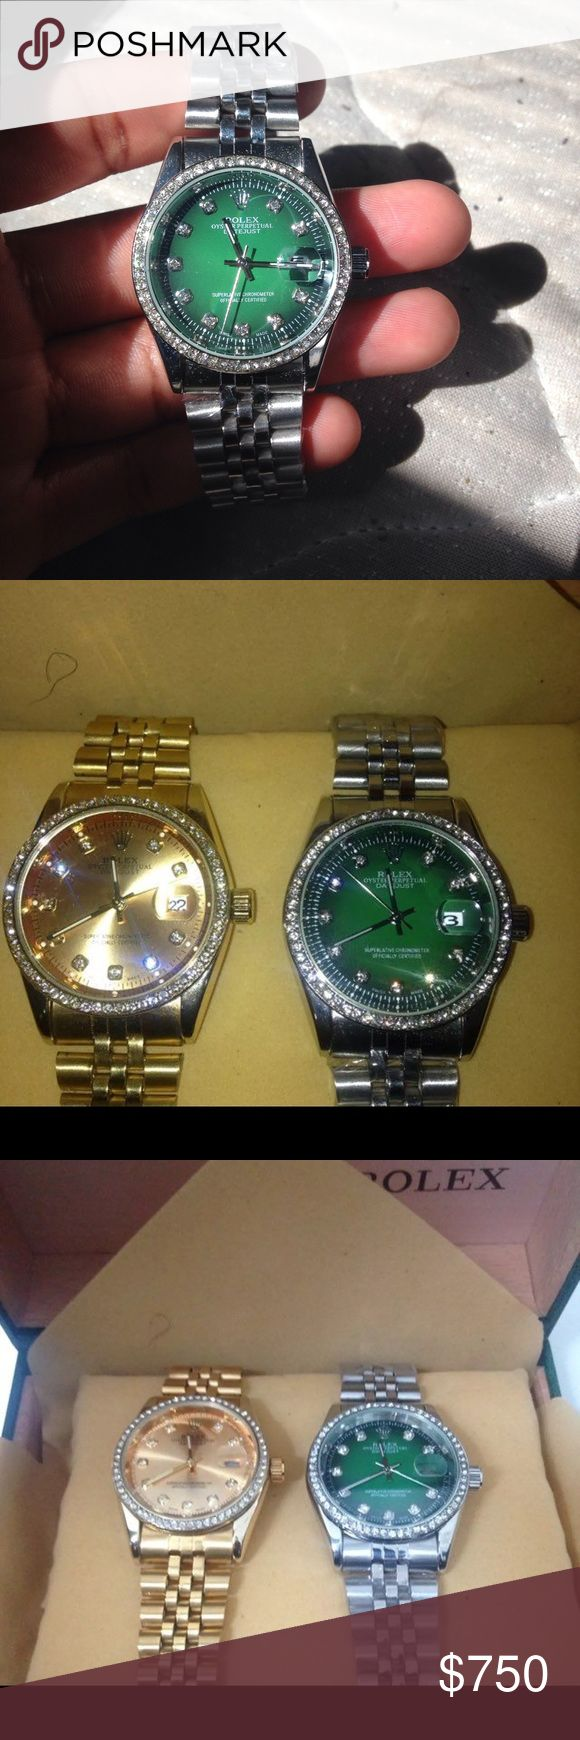 Rolex combo box One watch is gold and one silver brand new we can negotiate prices. Rolex Accessories Watches